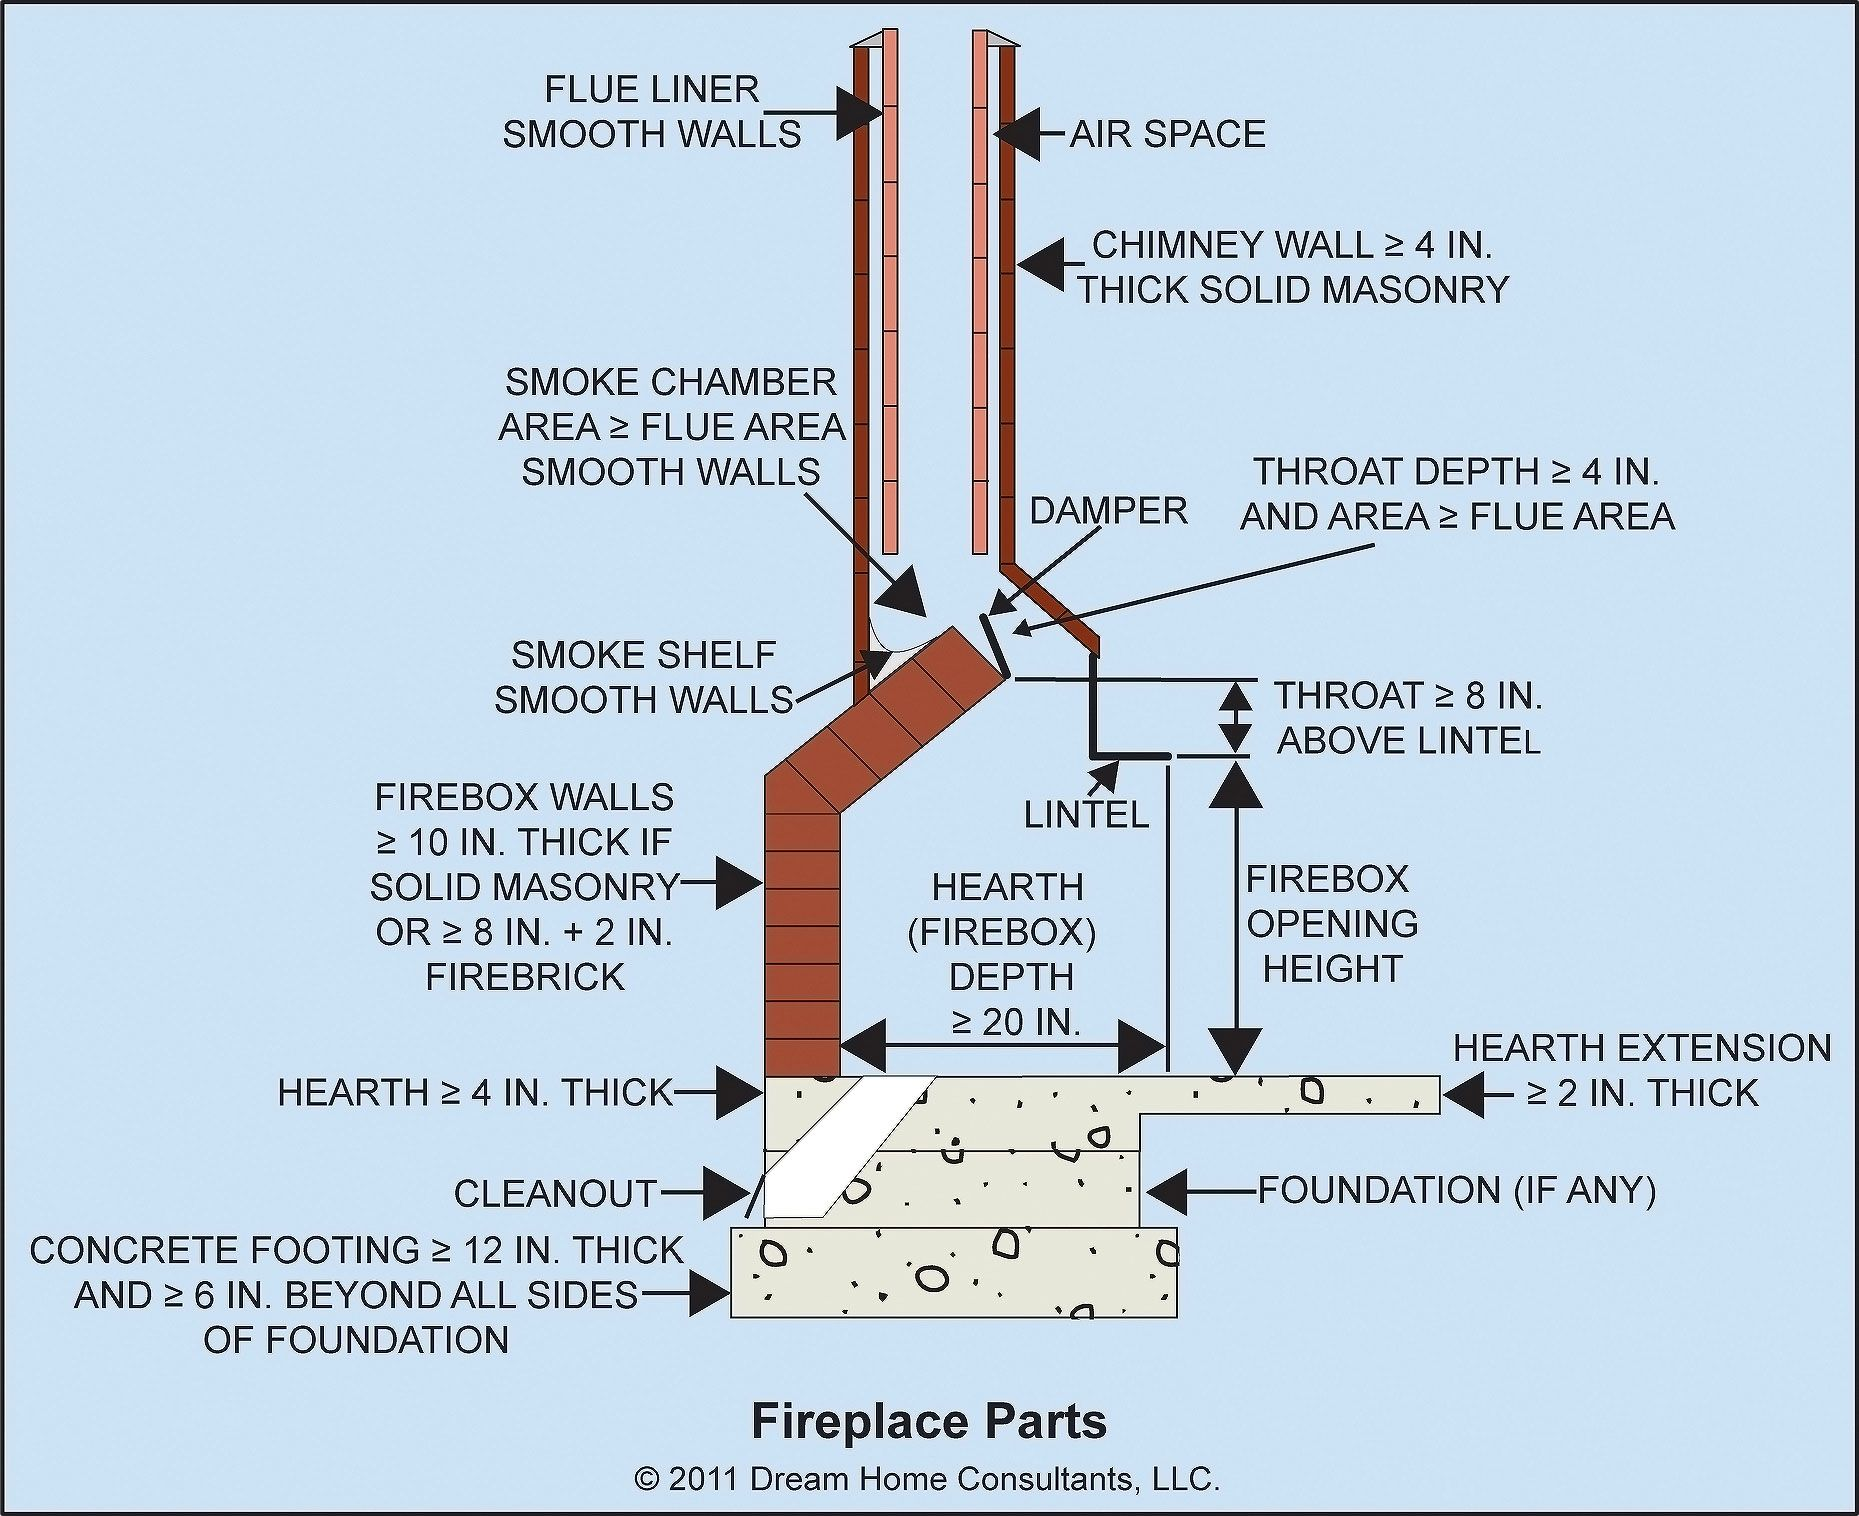 small resolution of firebox diagram fireplace parts home fireplace fireplaces diagram construction fireplace set